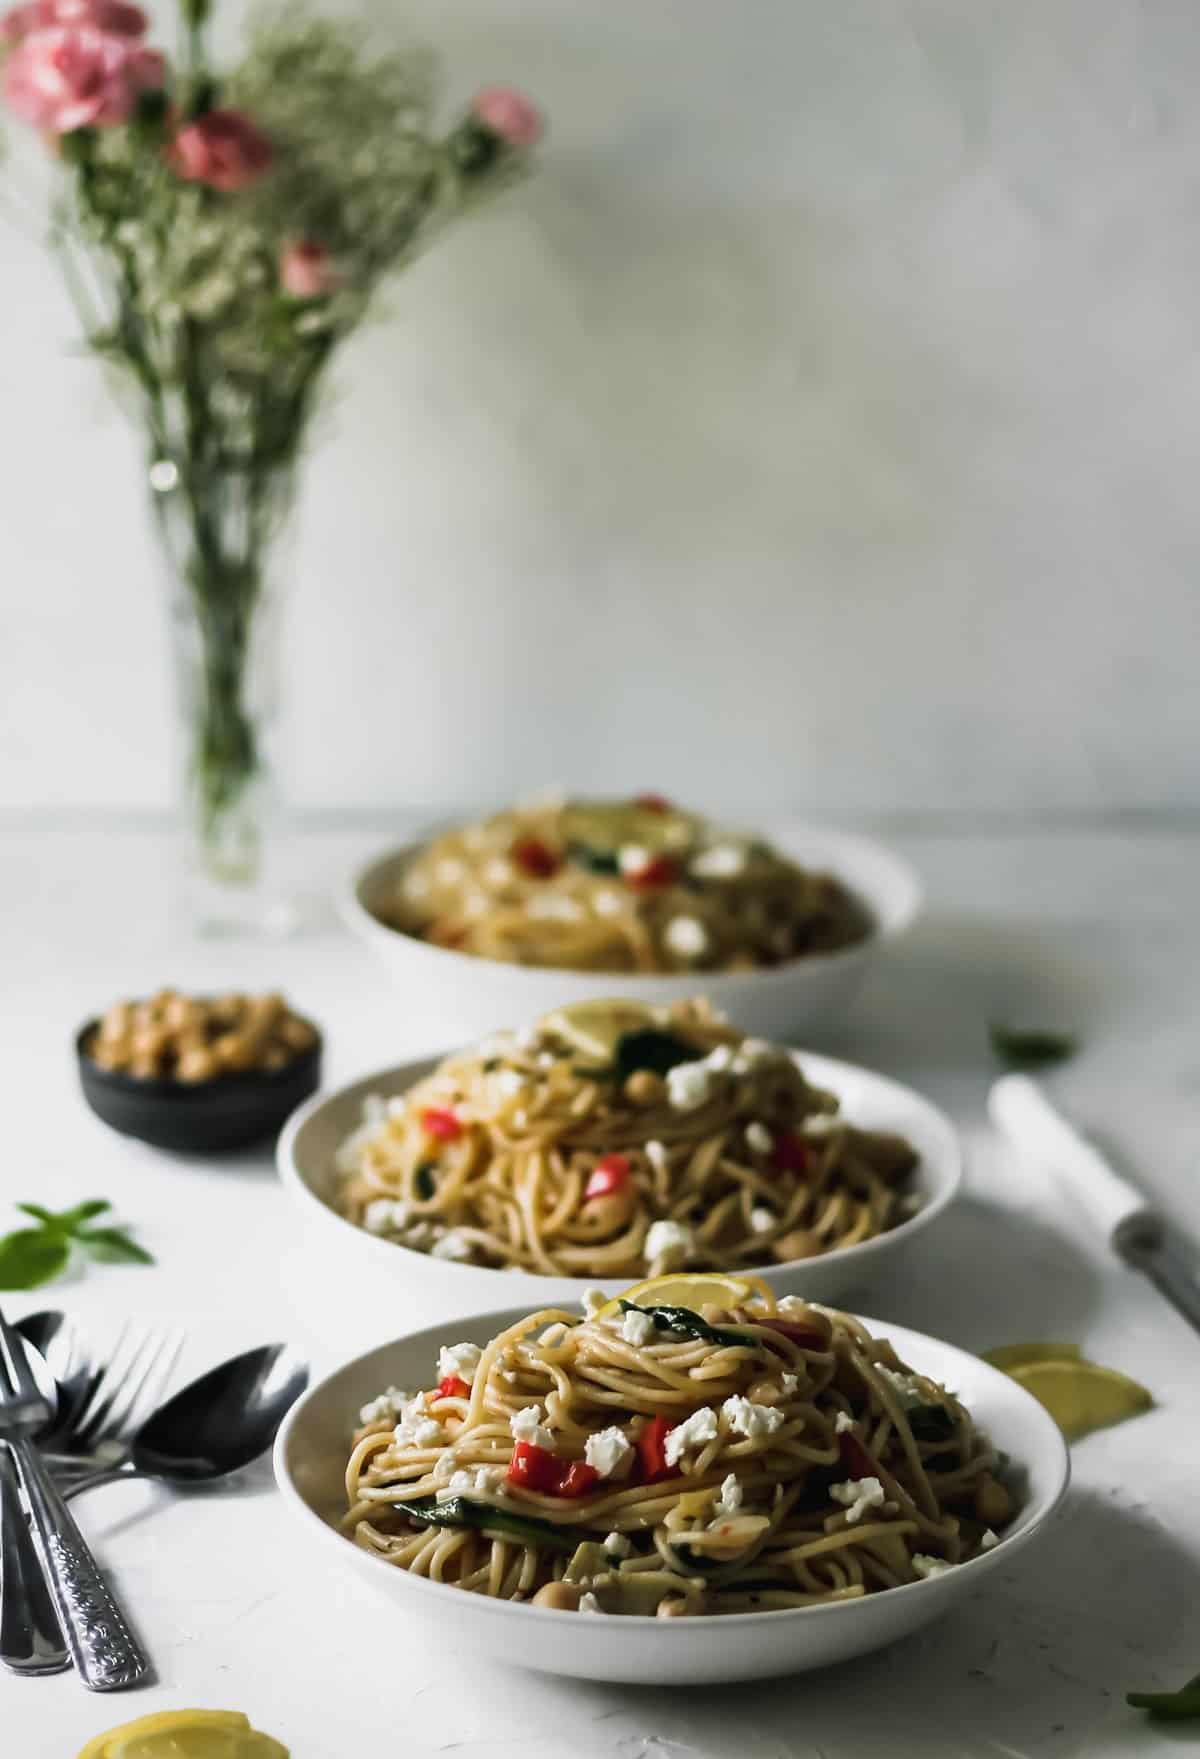 3 bowls of pasta with a vase of flowers behind them.